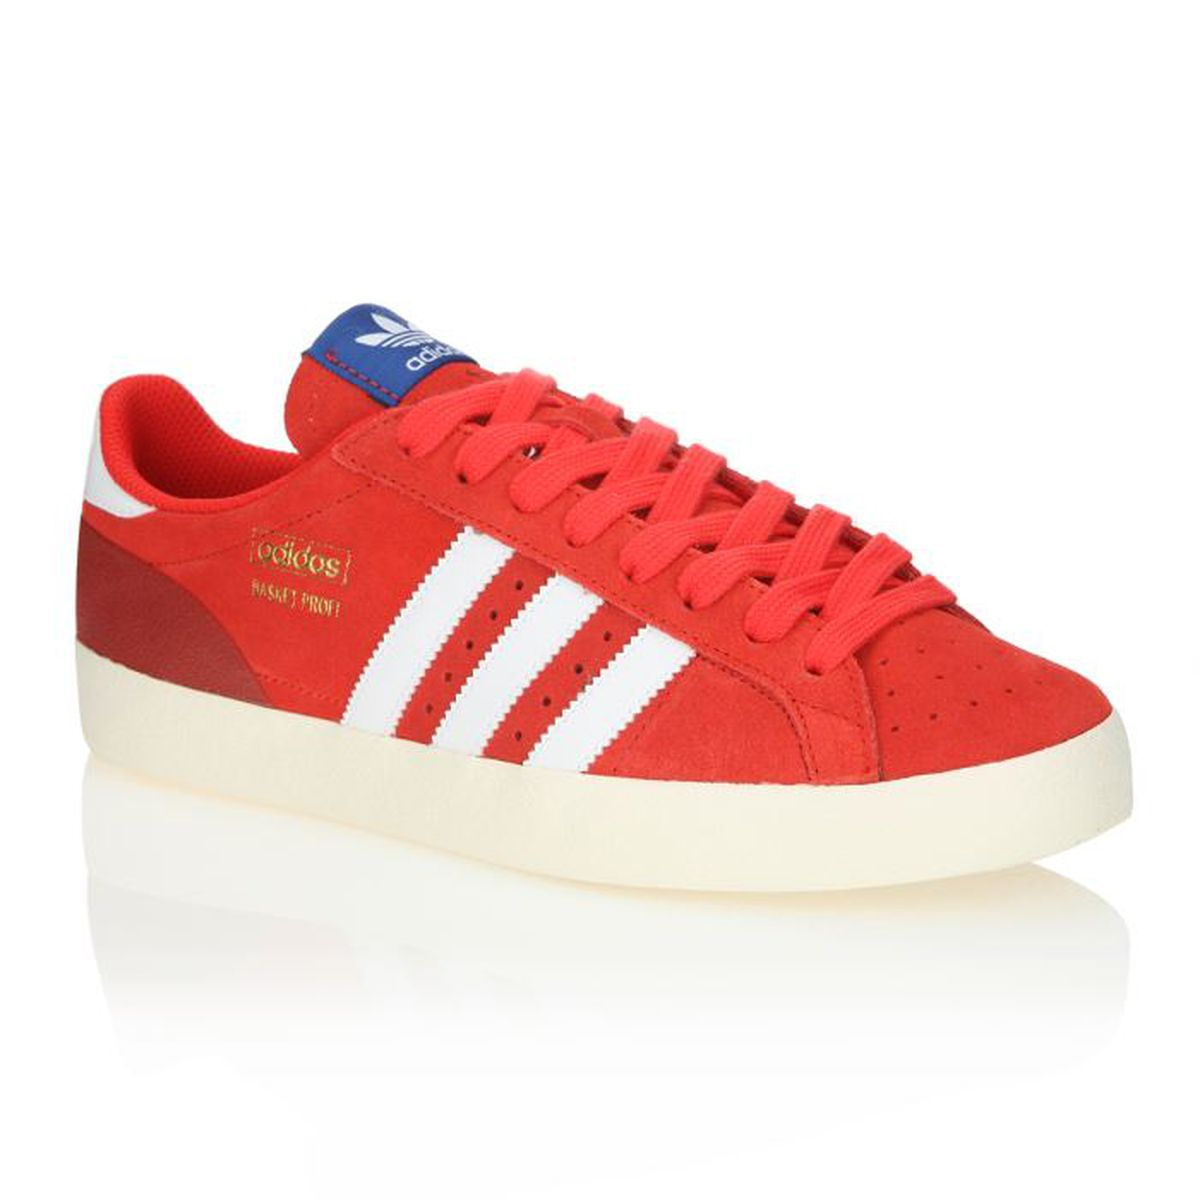 free shipping d6144 fdf6a BASKET ADIDAS ORIGINALS Baskets Profi Low Homme